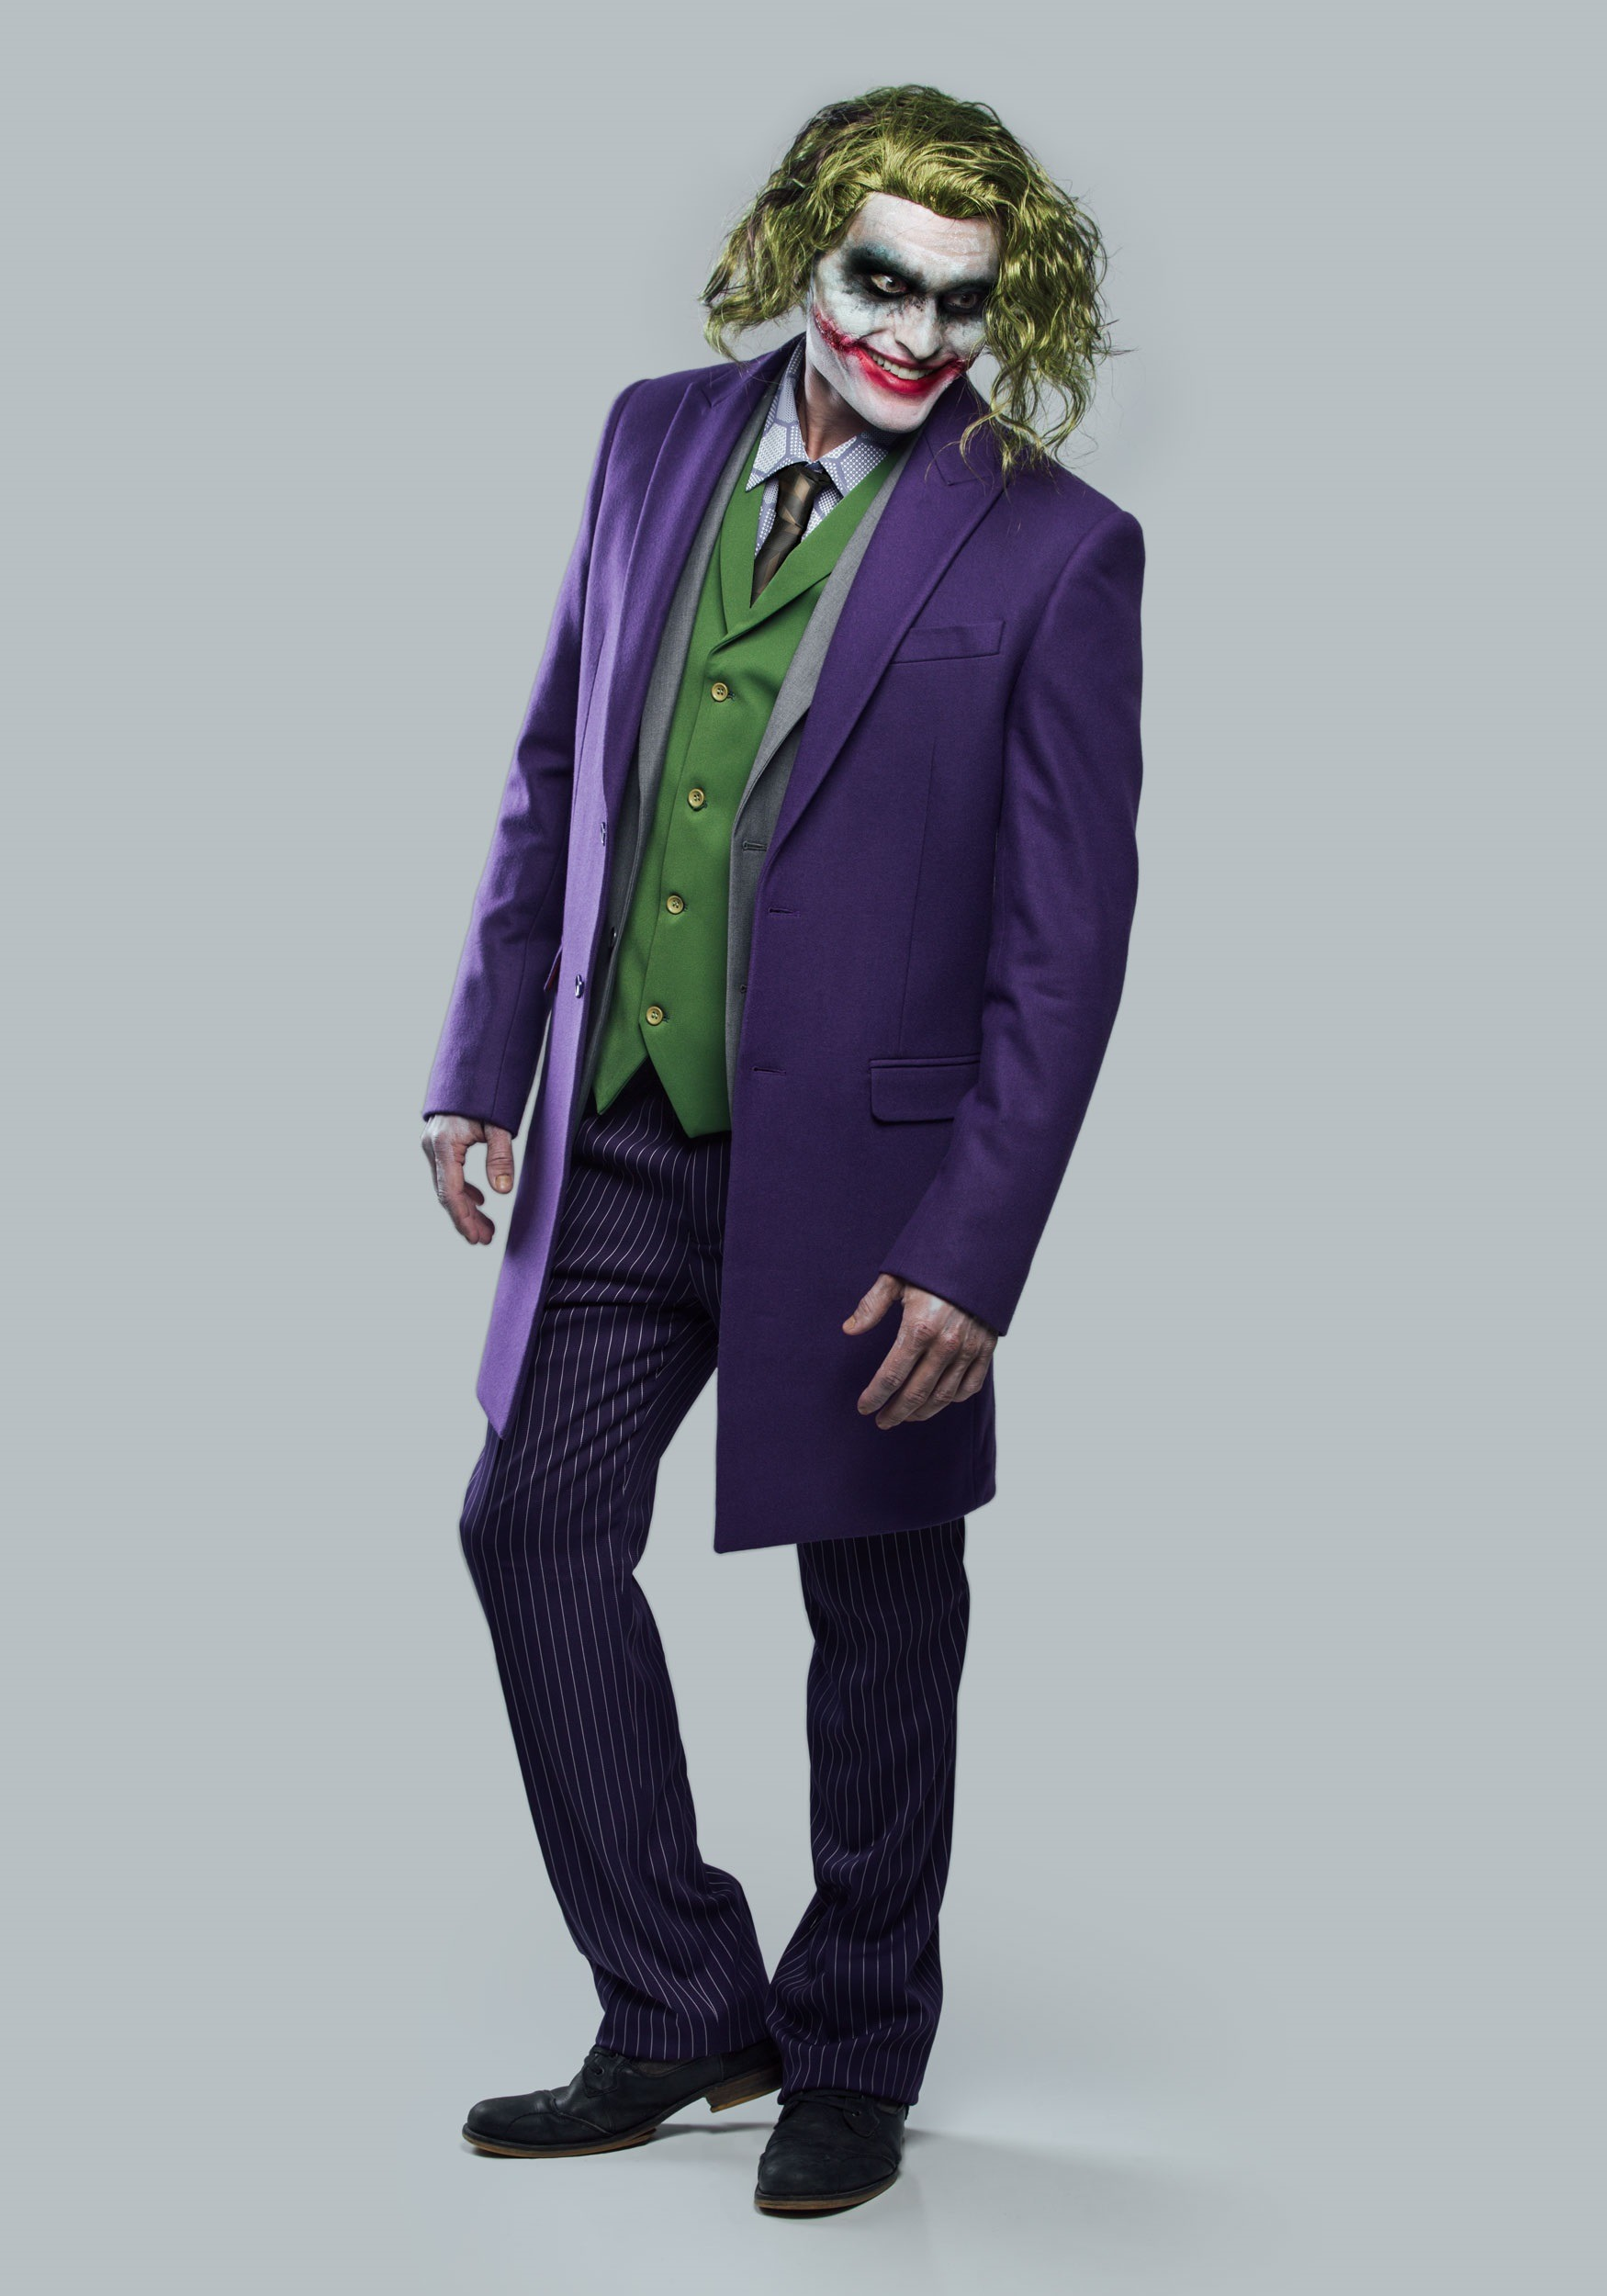 Authentic The Joker Suit